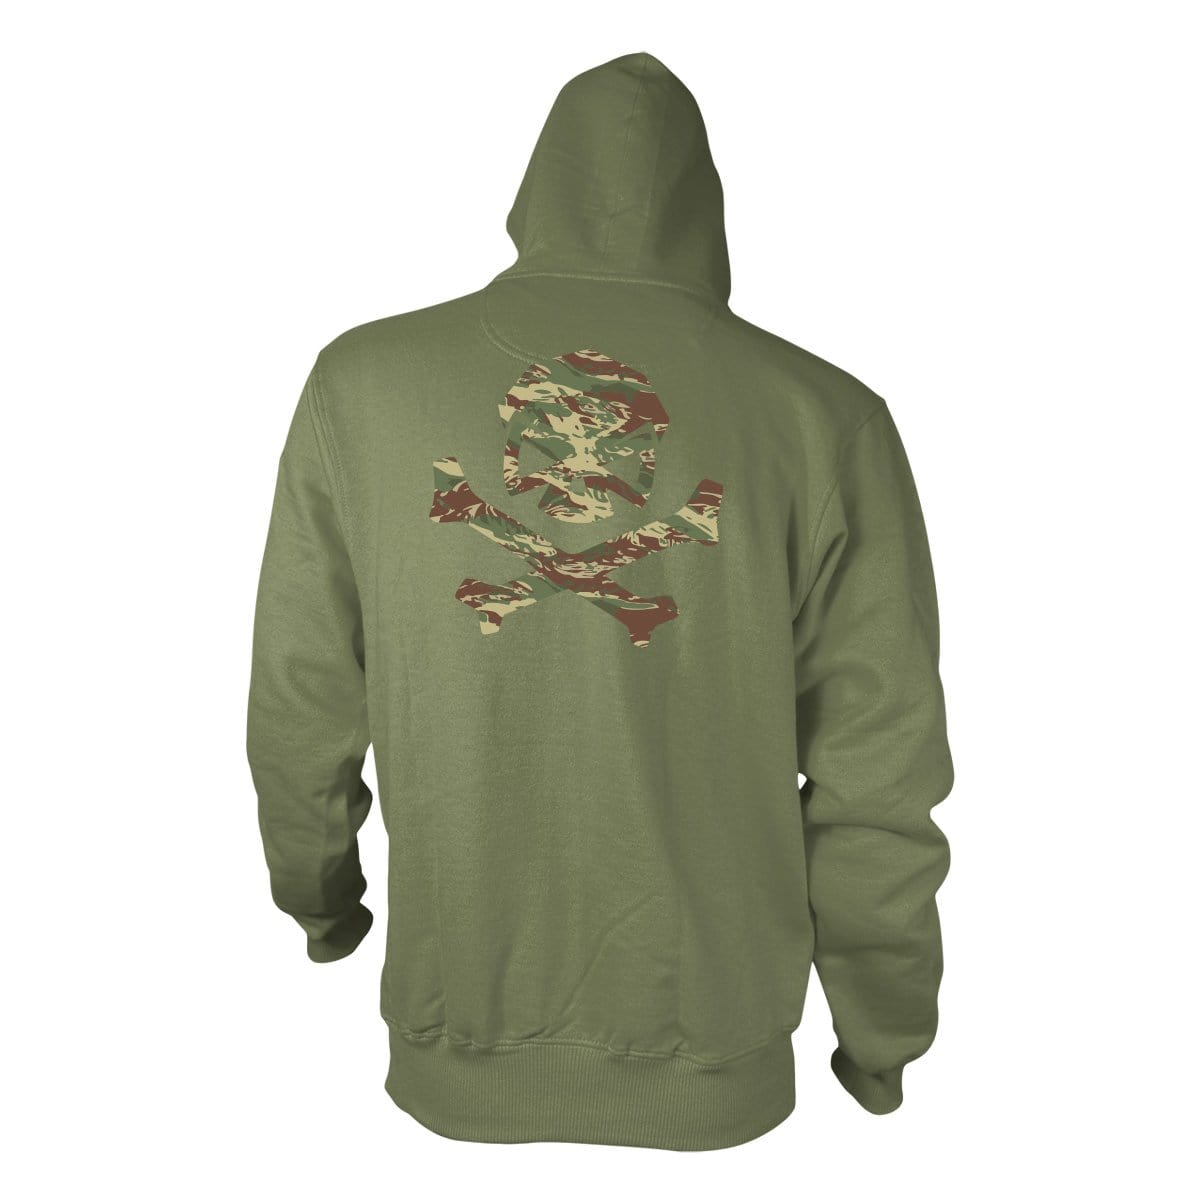 Hitter in the Mist Hoodie - Military Green/Brushstroke - Hoodies - Pipe Hitters Union